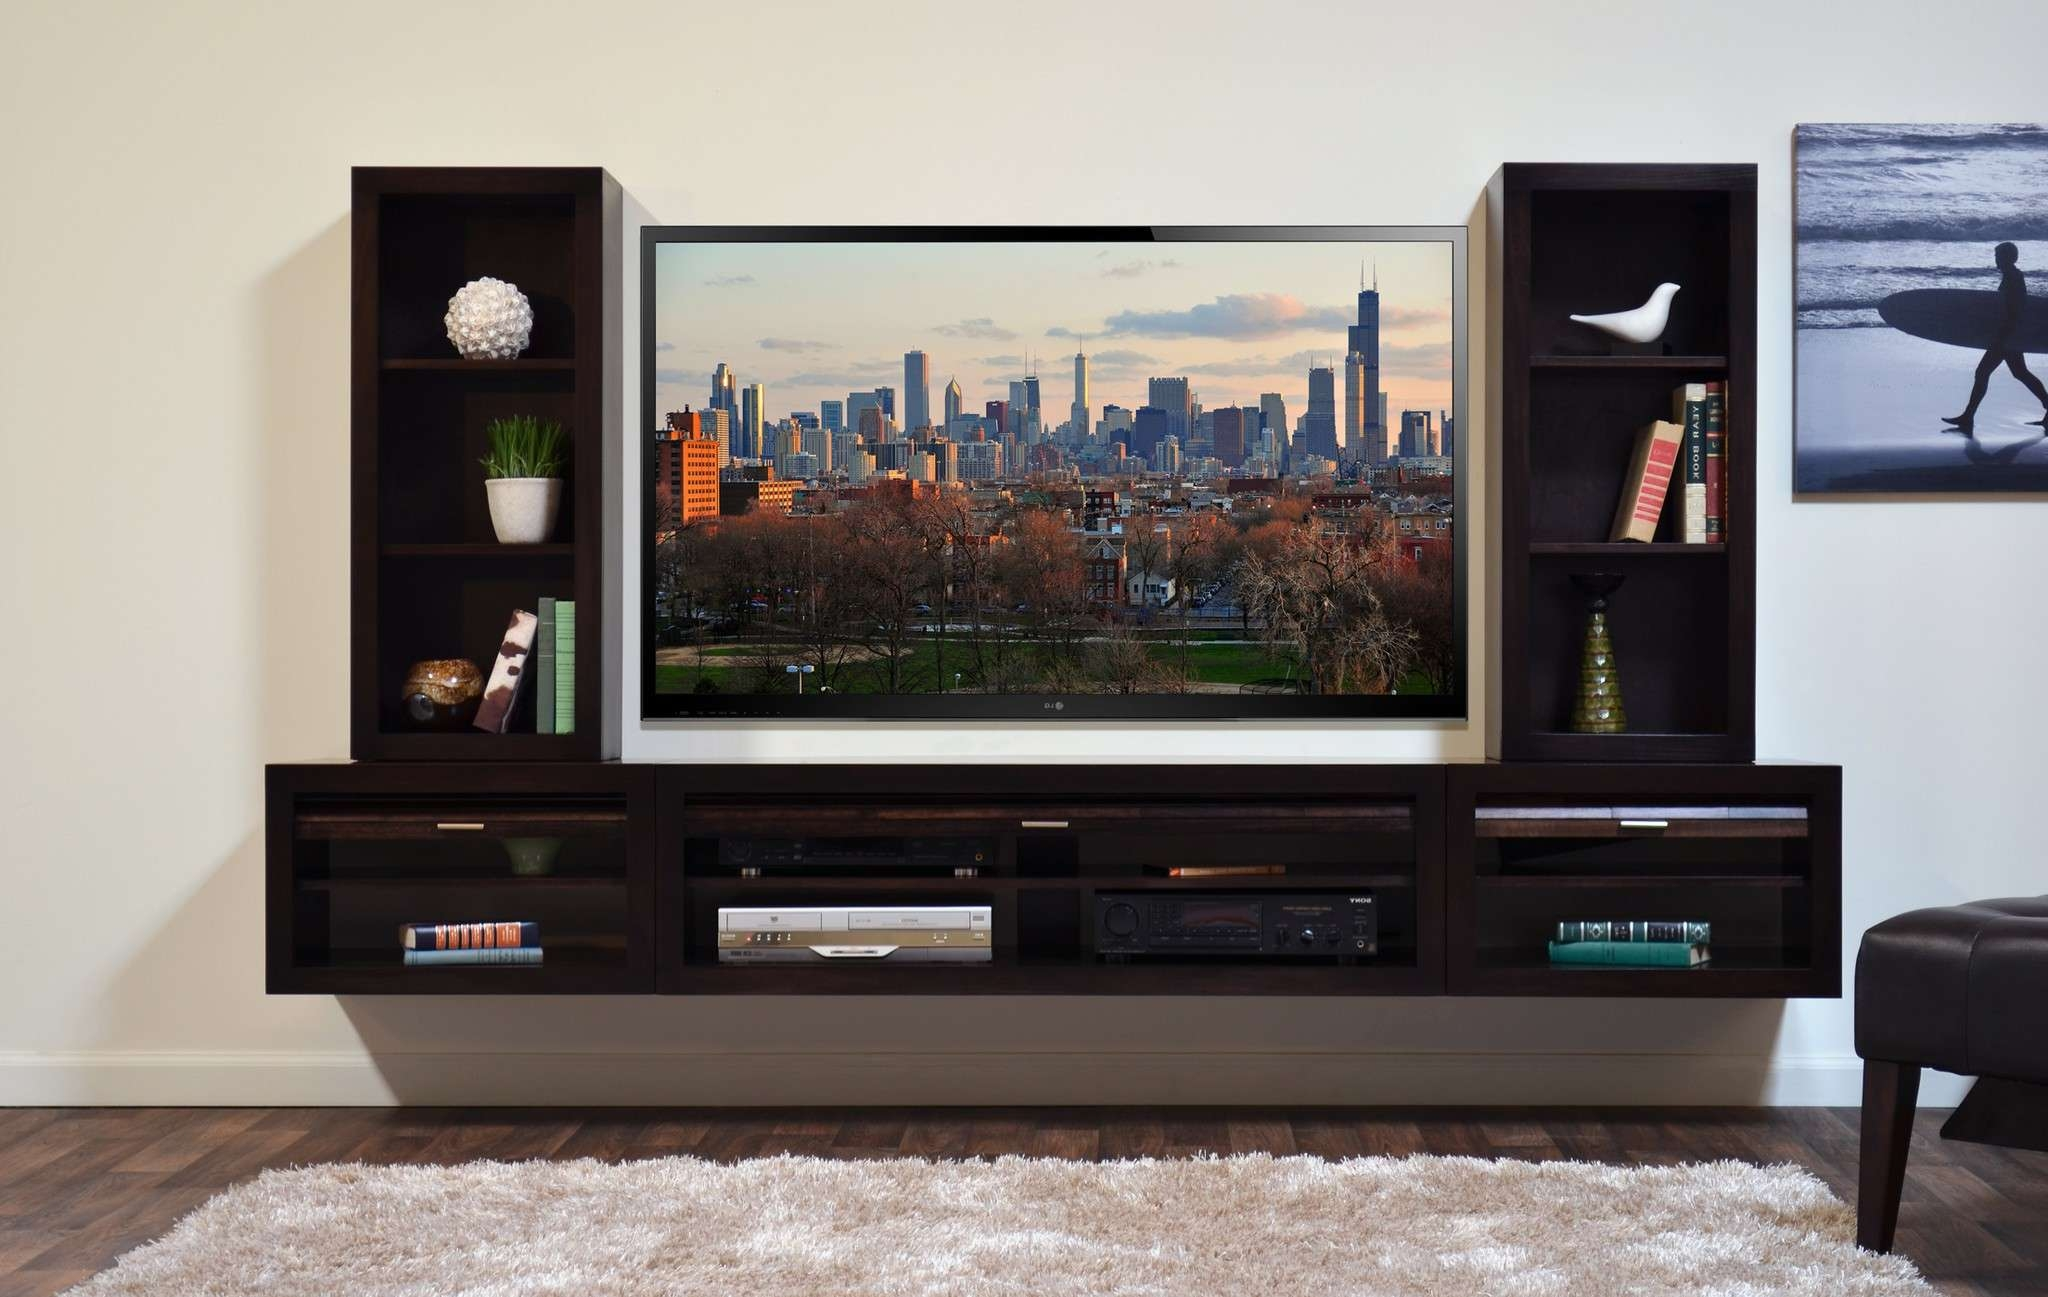 Wall Shelves Design: Floating Shelves Under Wall Mounted Tv Intended For Wall Mounted Under Tv Cabinets (View 16 of 20)